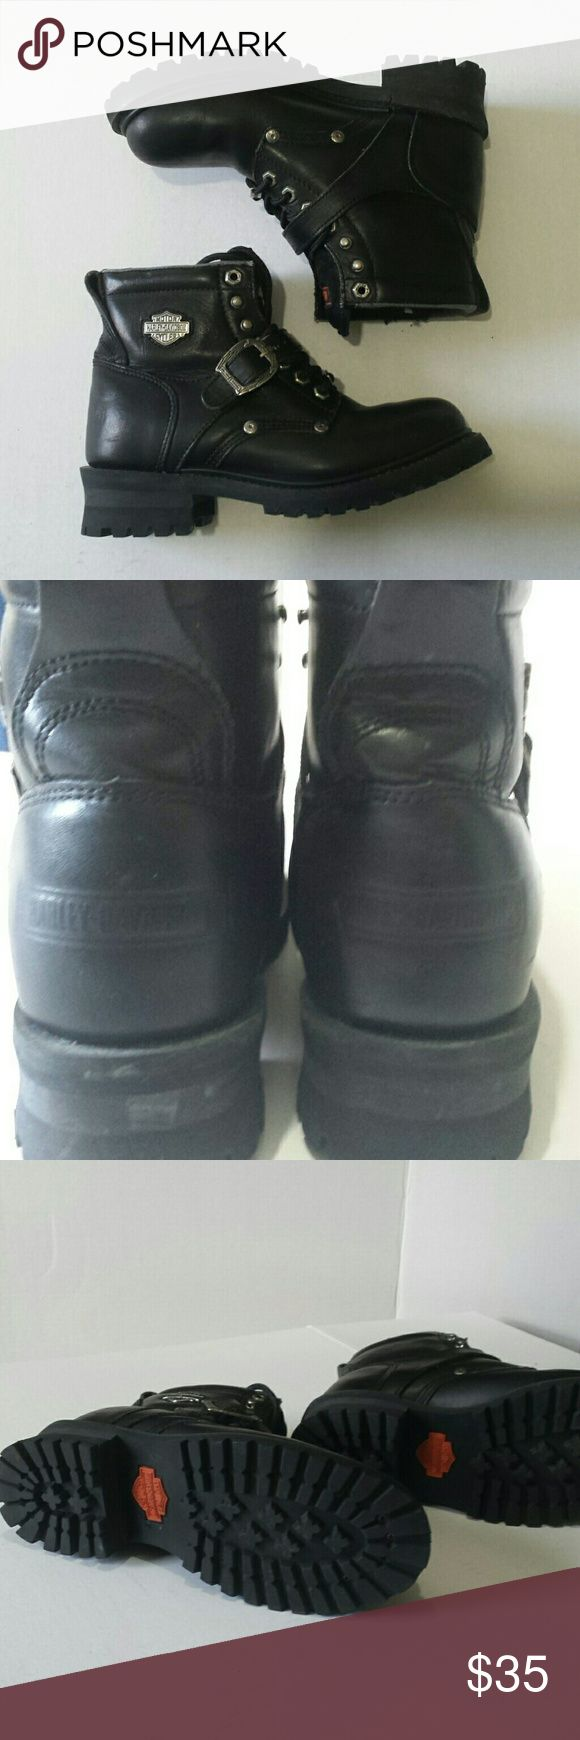 Women's Harley Davidson riding boots Harley-Davidson Faded Glory Style riding boots size 9 Genuine leather See picture of bottom of boot almost brand new  worn only a few times but have had 4 quite some time Also see top of ankle area peeling Harley-Davidson Shoes Combat & Moto Boots